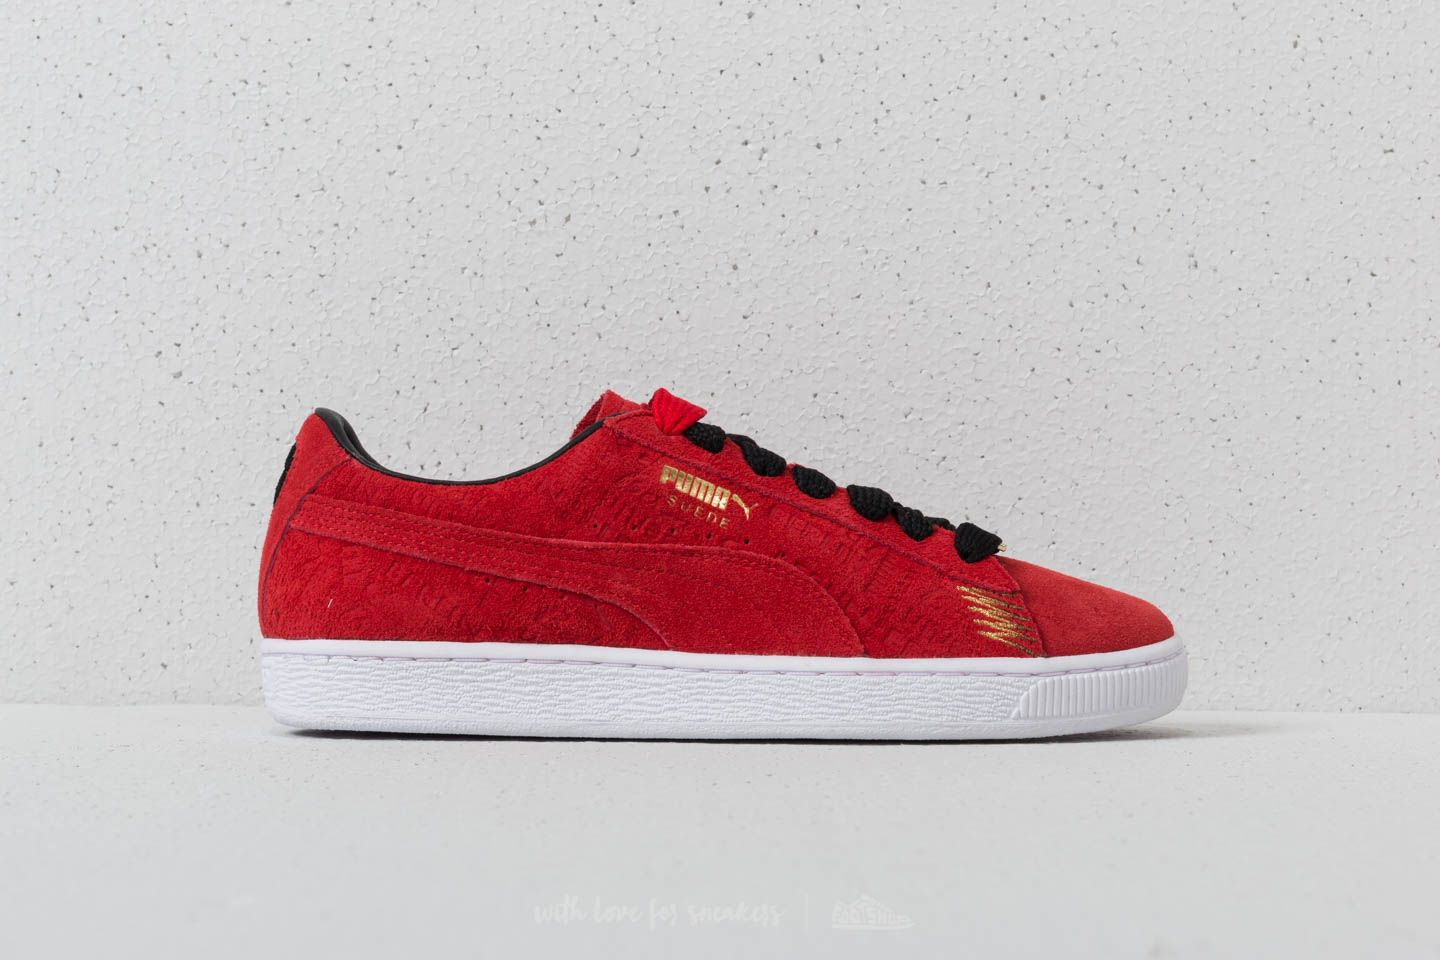 5cb1cd700541 Puma Suede Classic Berlin Flame Scarlet-Flame Scarlet at a great price 56 €  buy